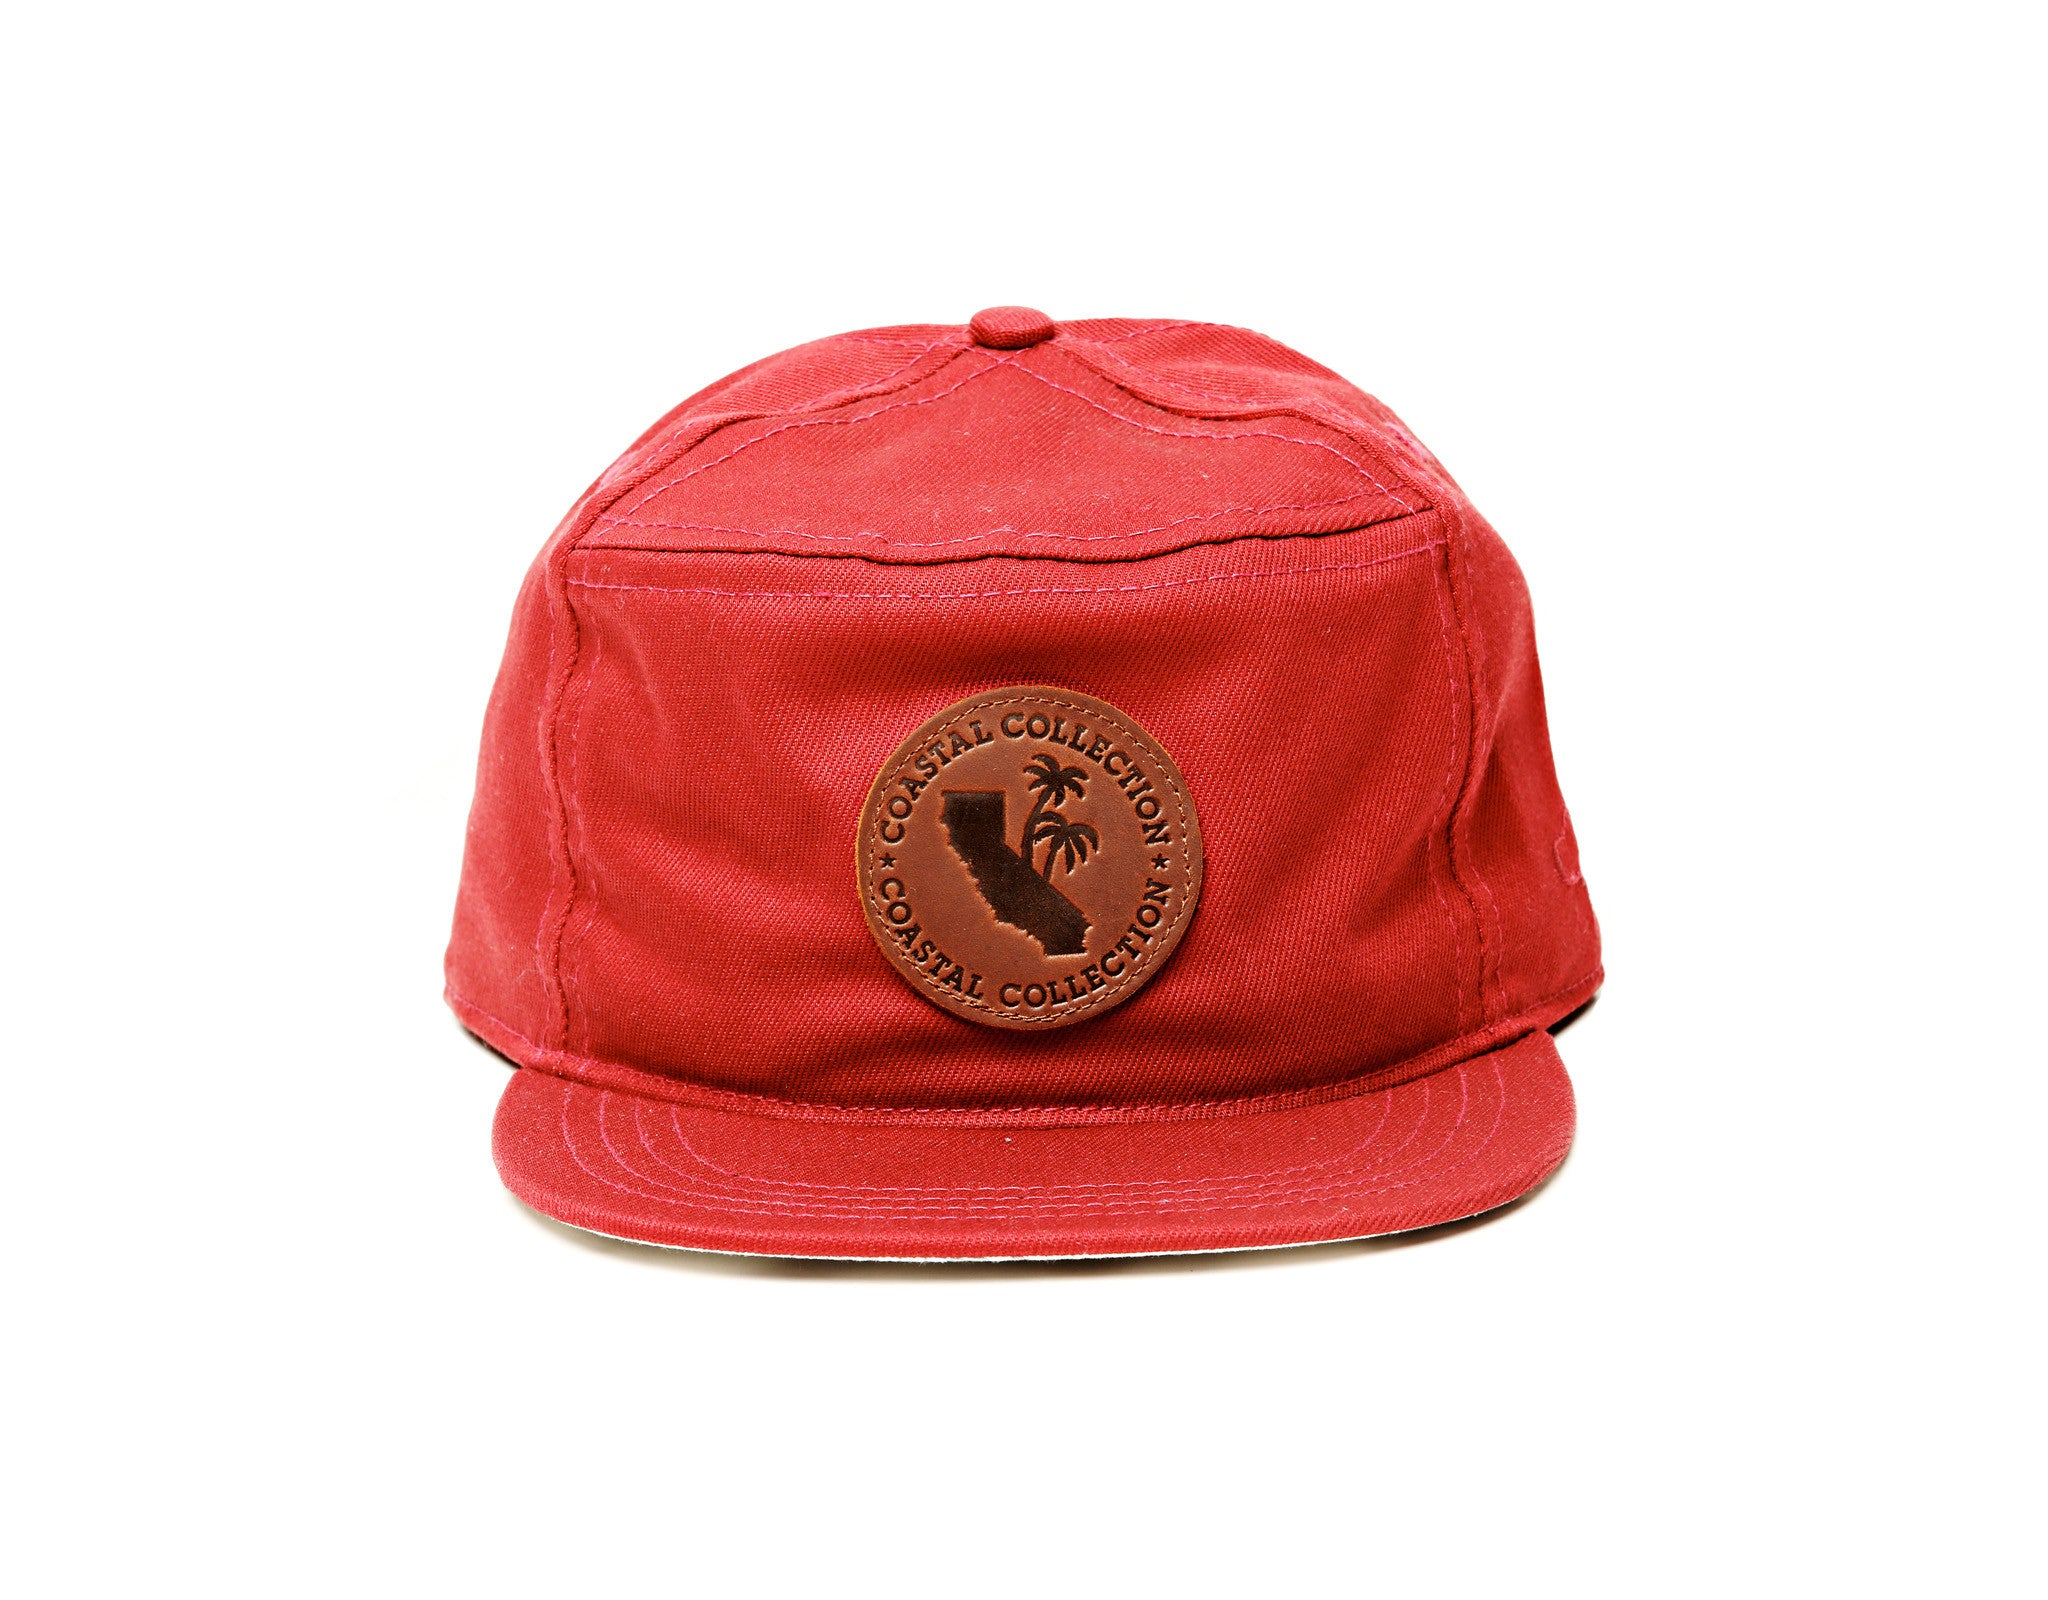 COASTAL COLLECTION Strapback